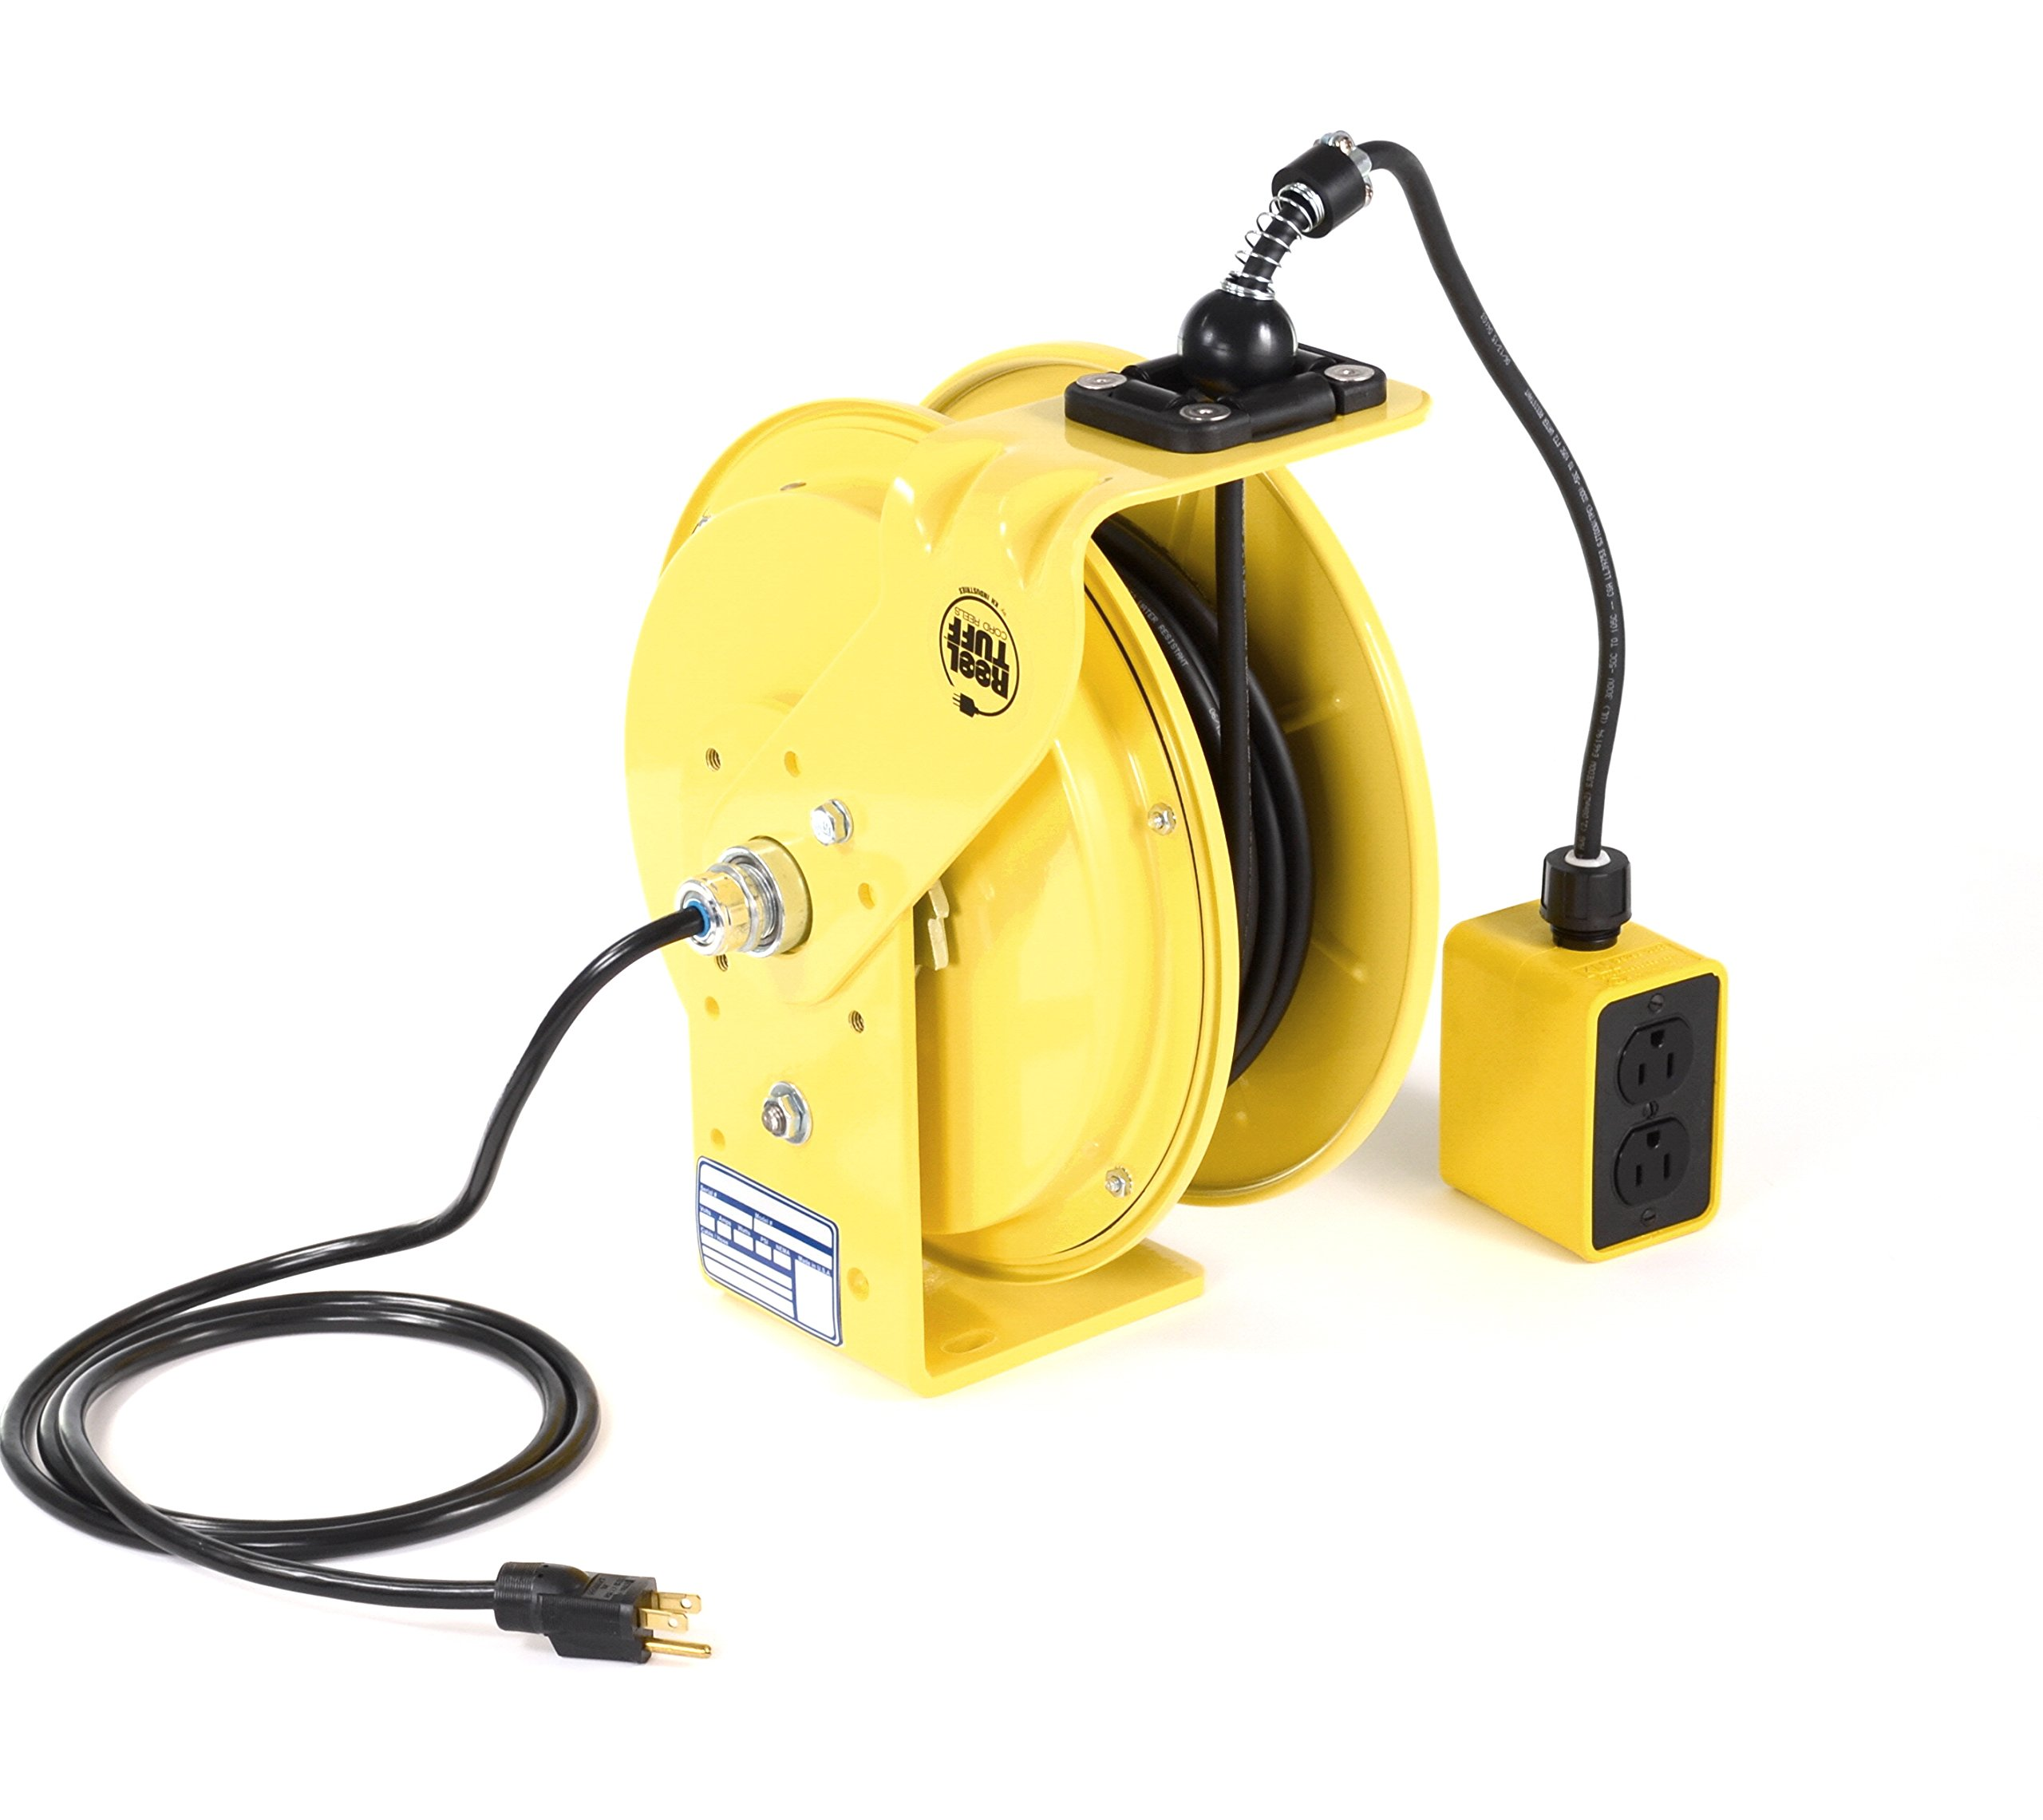 KH Industries RTB Series ReelTuff Industrial Grade Retractable Power Cord Reel with Black Cable, 16/3 SJOW Cable Prewired with Four Receptacle Outlet Box, 15 Amp, 50' Length, Yellow Powder Coat Finish